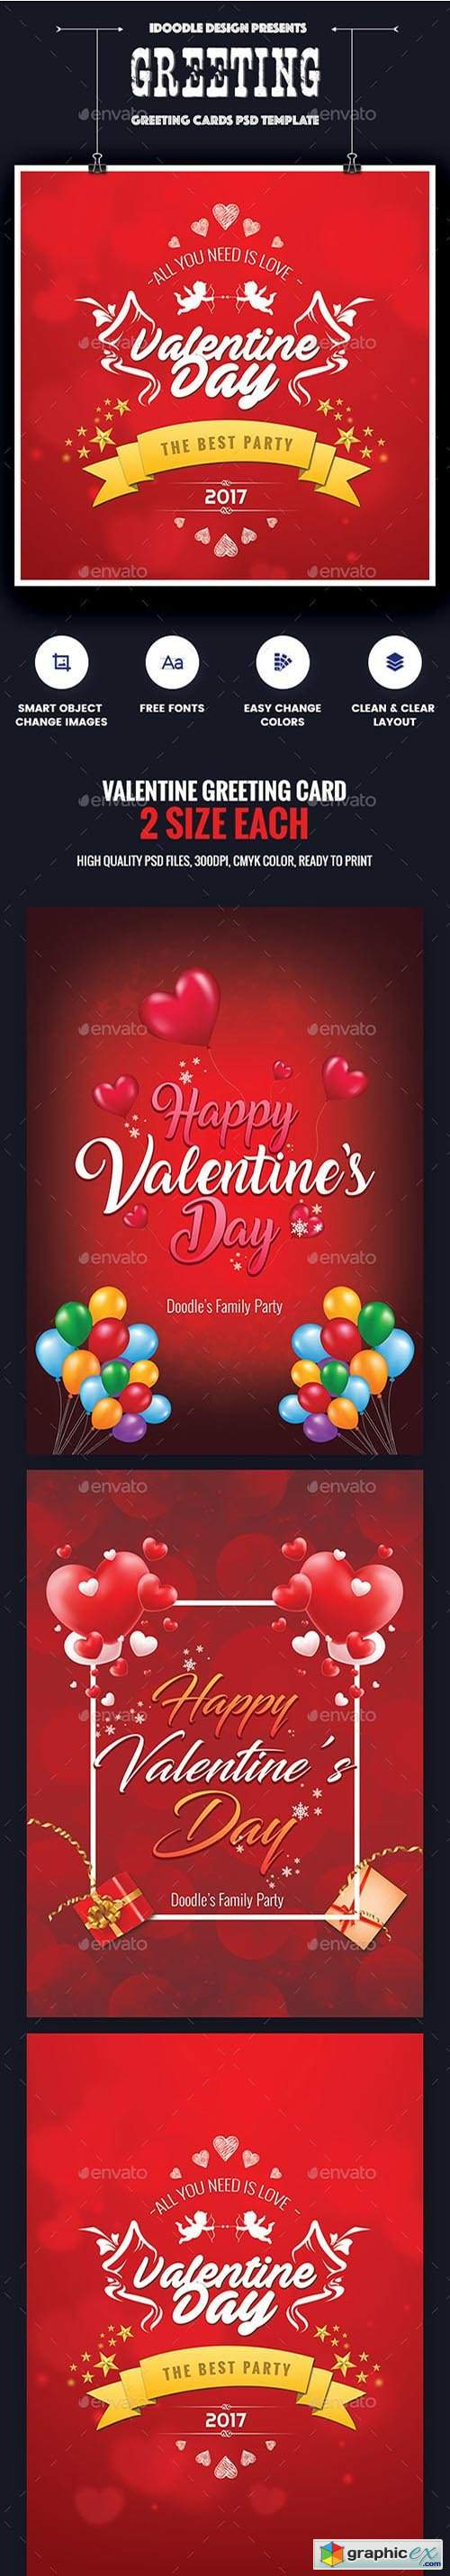 Valentine Greeting Card - 06 PSD [02 Size Each - 7x5 & 5x7]